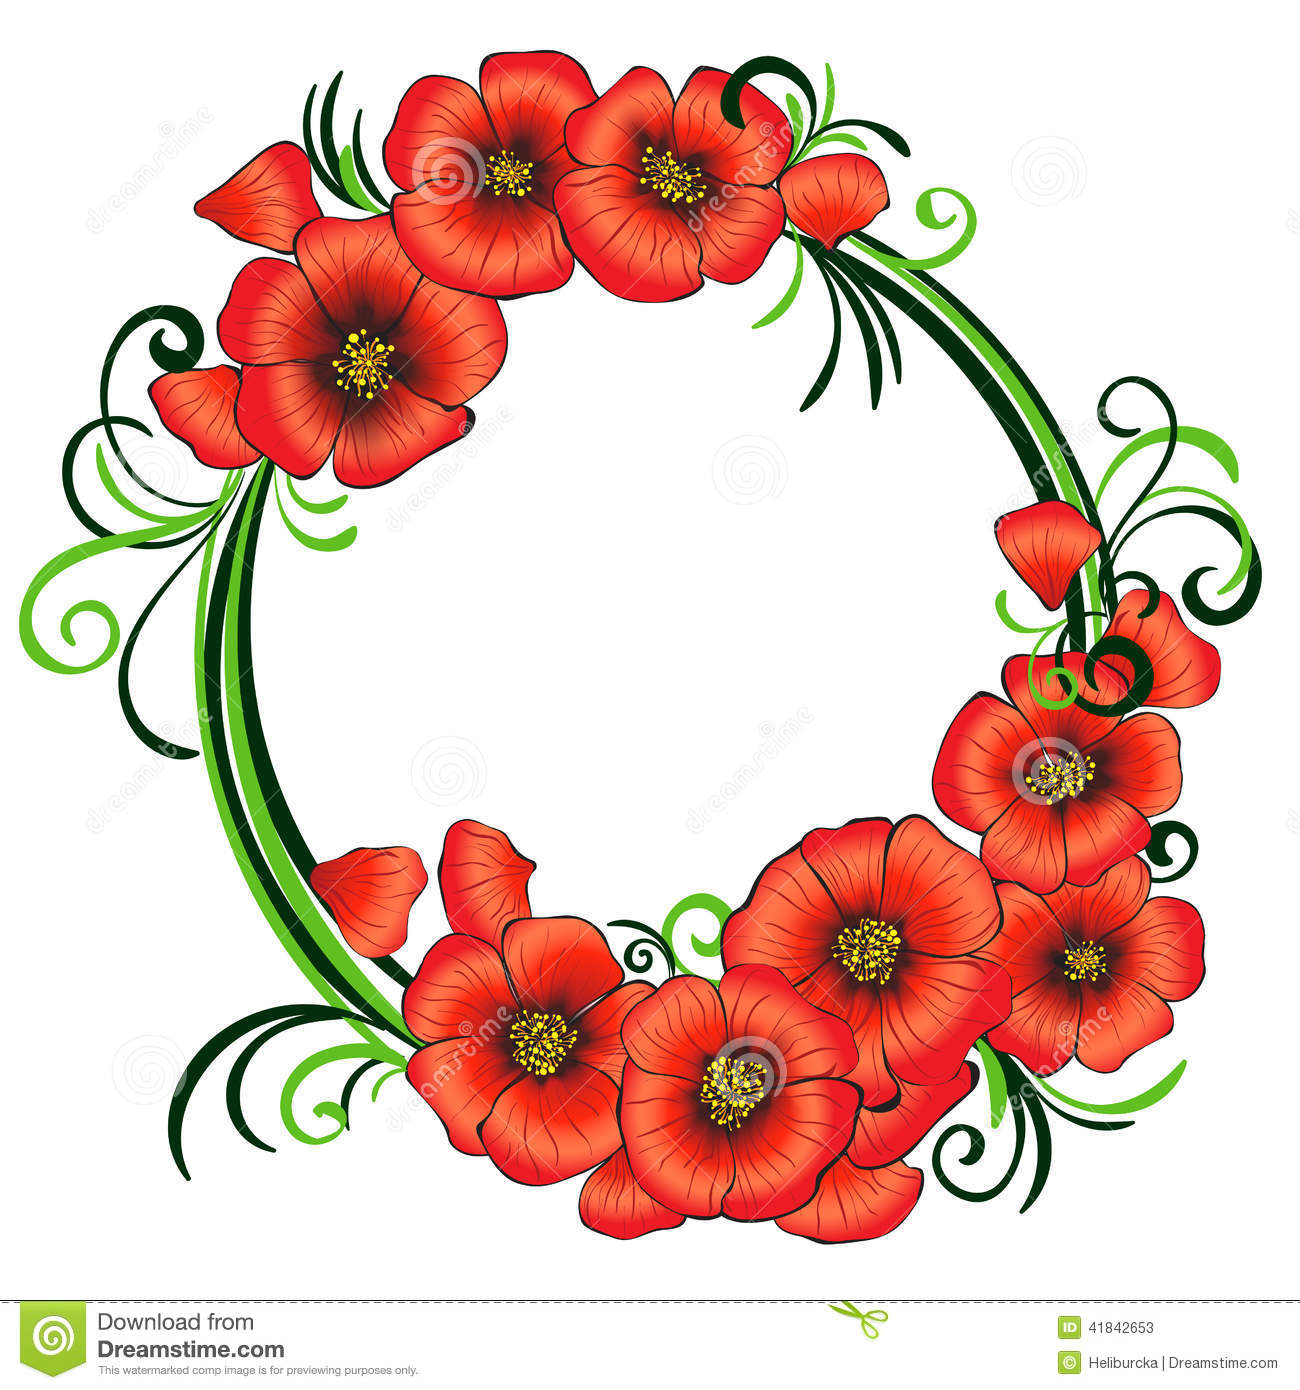 Floral Frame With Red Poppies And Green Swirls. Stock ...